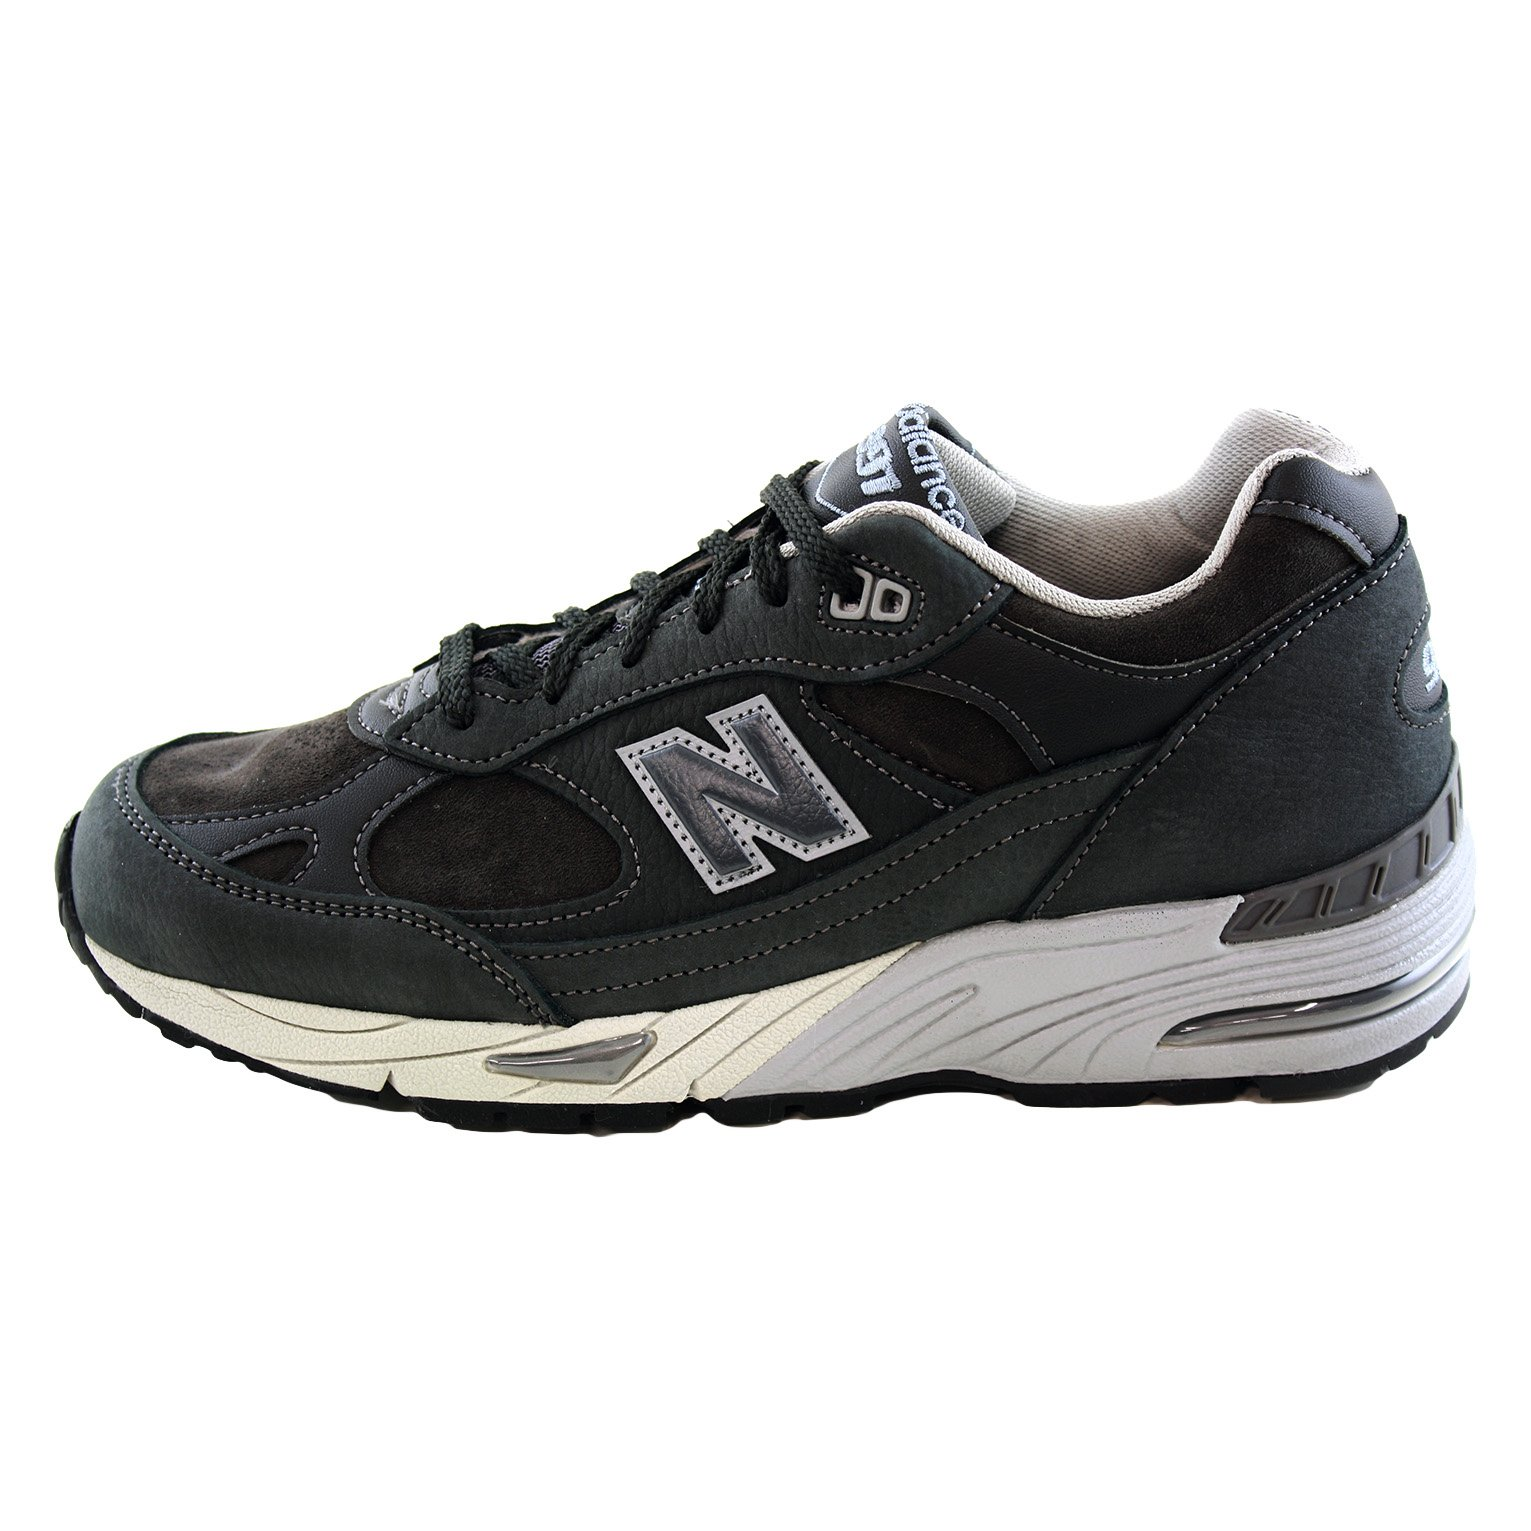 NS. 287057 NEW BALANCE M991 NDG 75